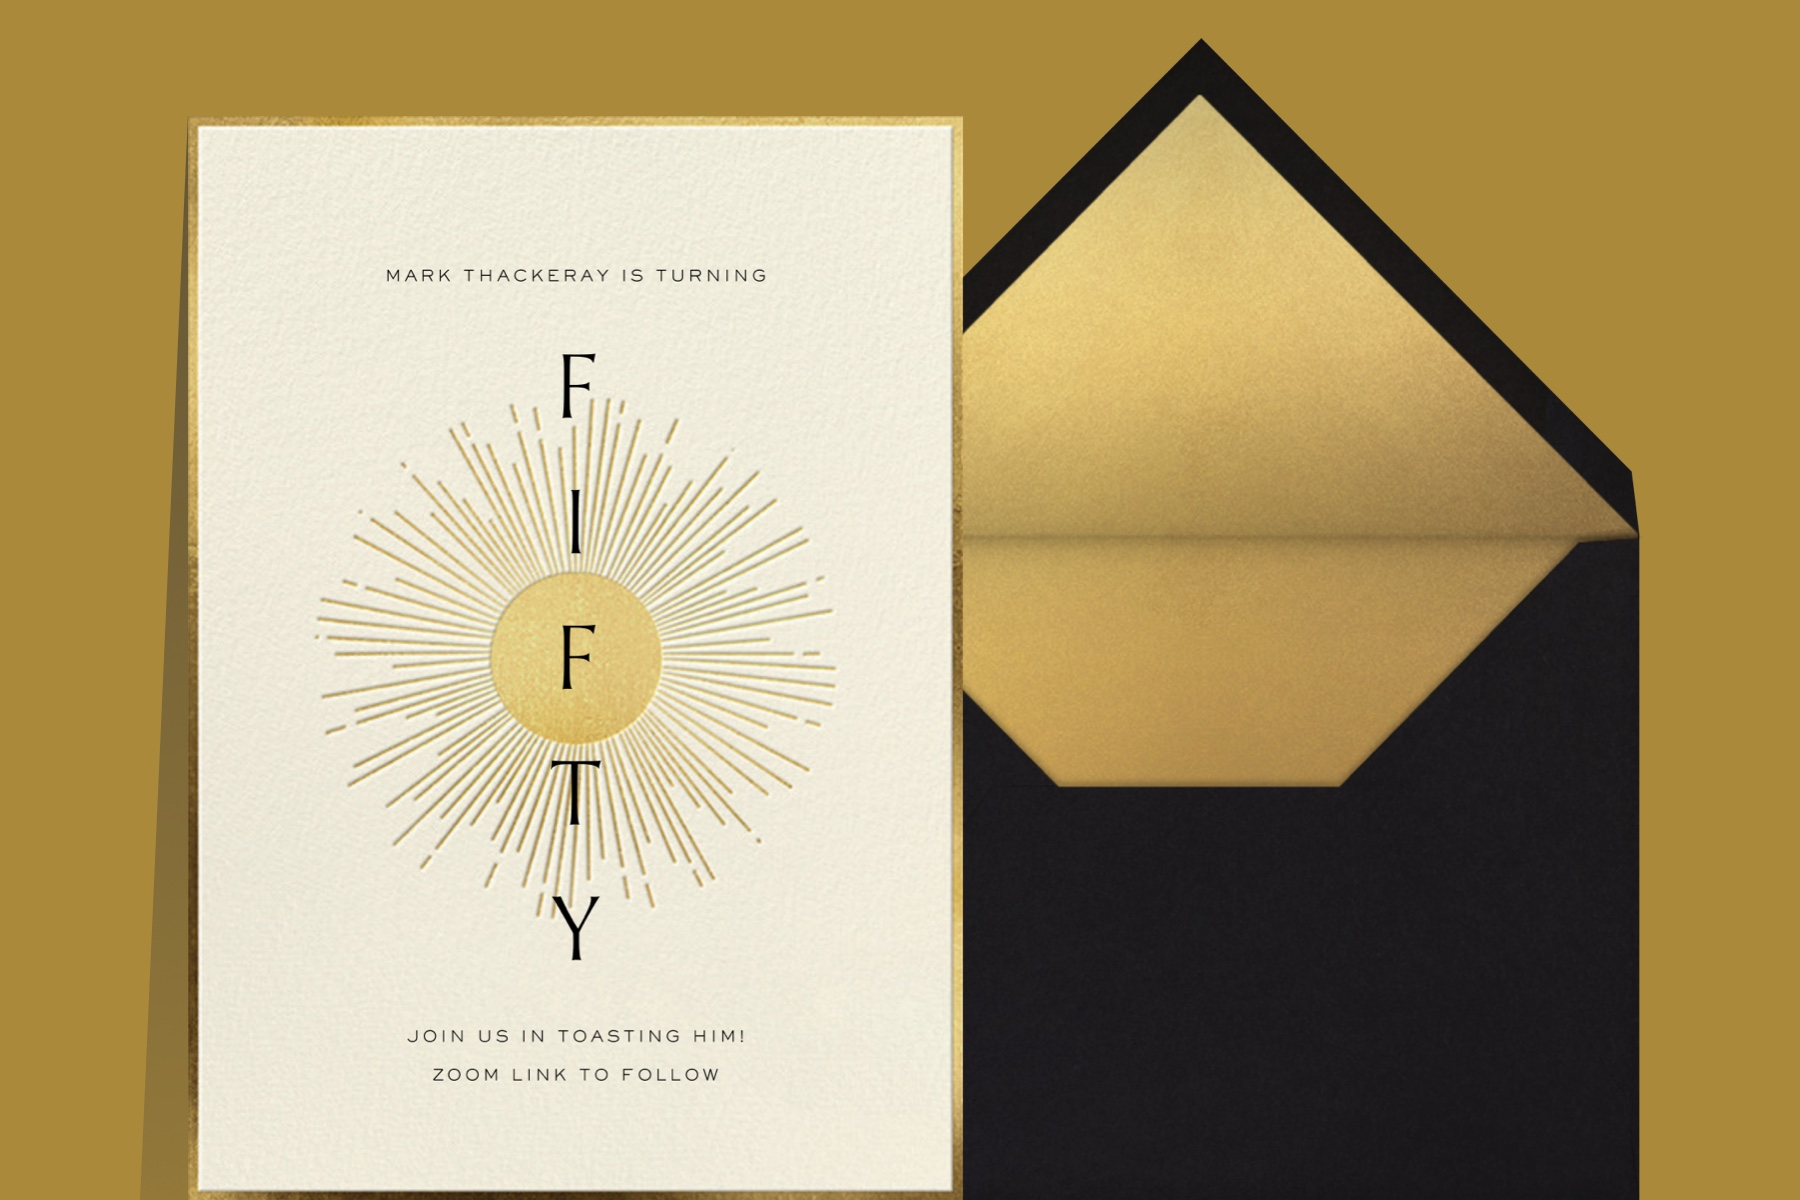 """""""Around the Sun"""" invitation by Paperless Post featuring an illustration of a golden sun with the word """"Fifty"""" written vertically down the center. The card is shown on a gold background."""